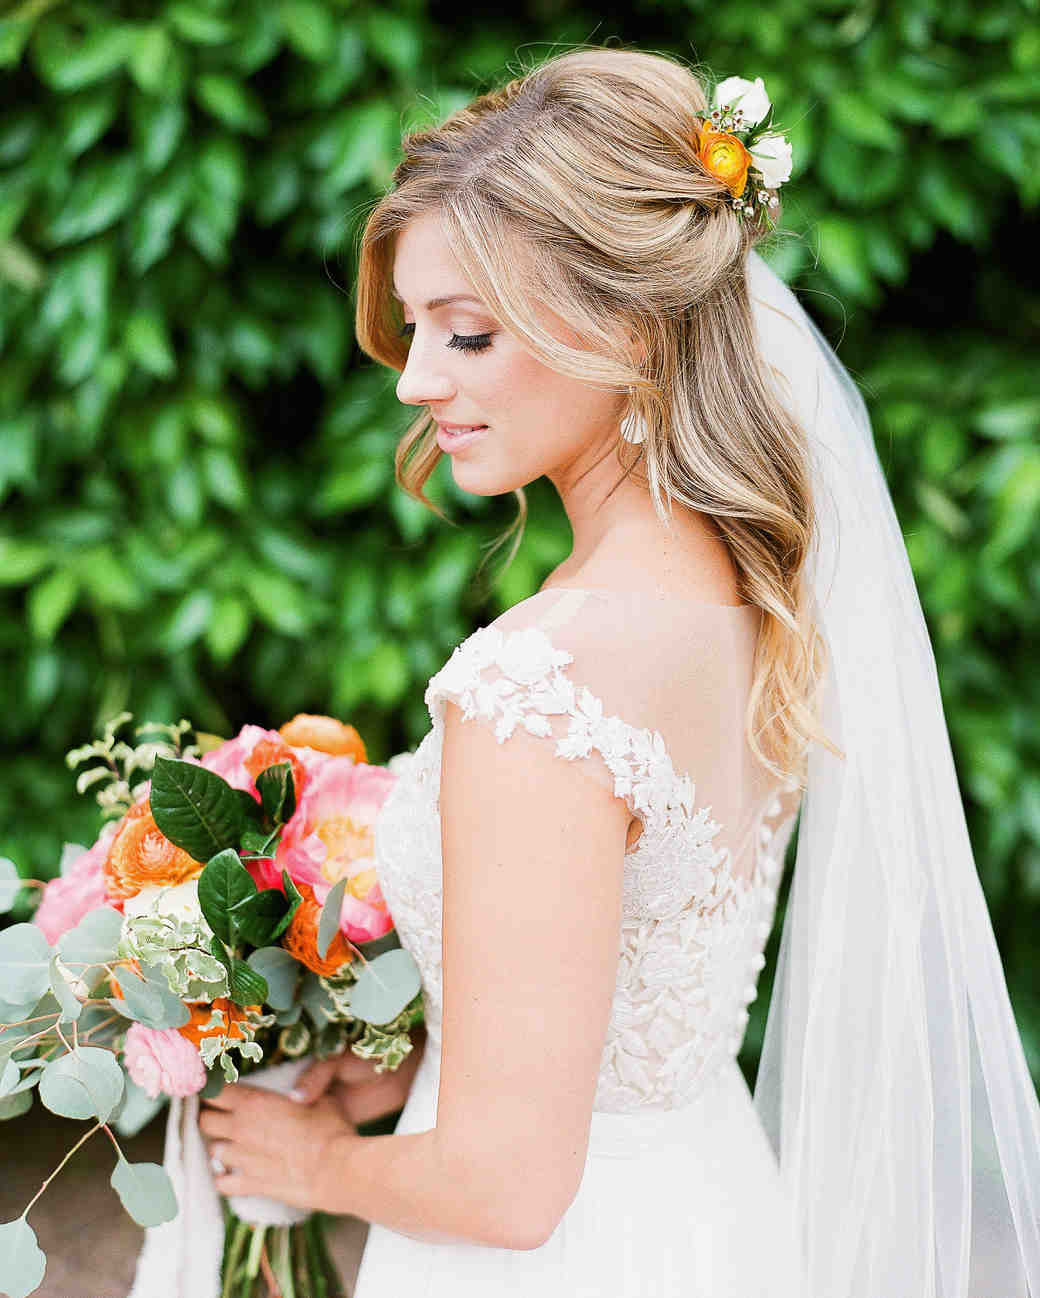 Wedding Hairstyle For Bride: 28 Half-Up, Half-Down Wedding Hairstyles We Love